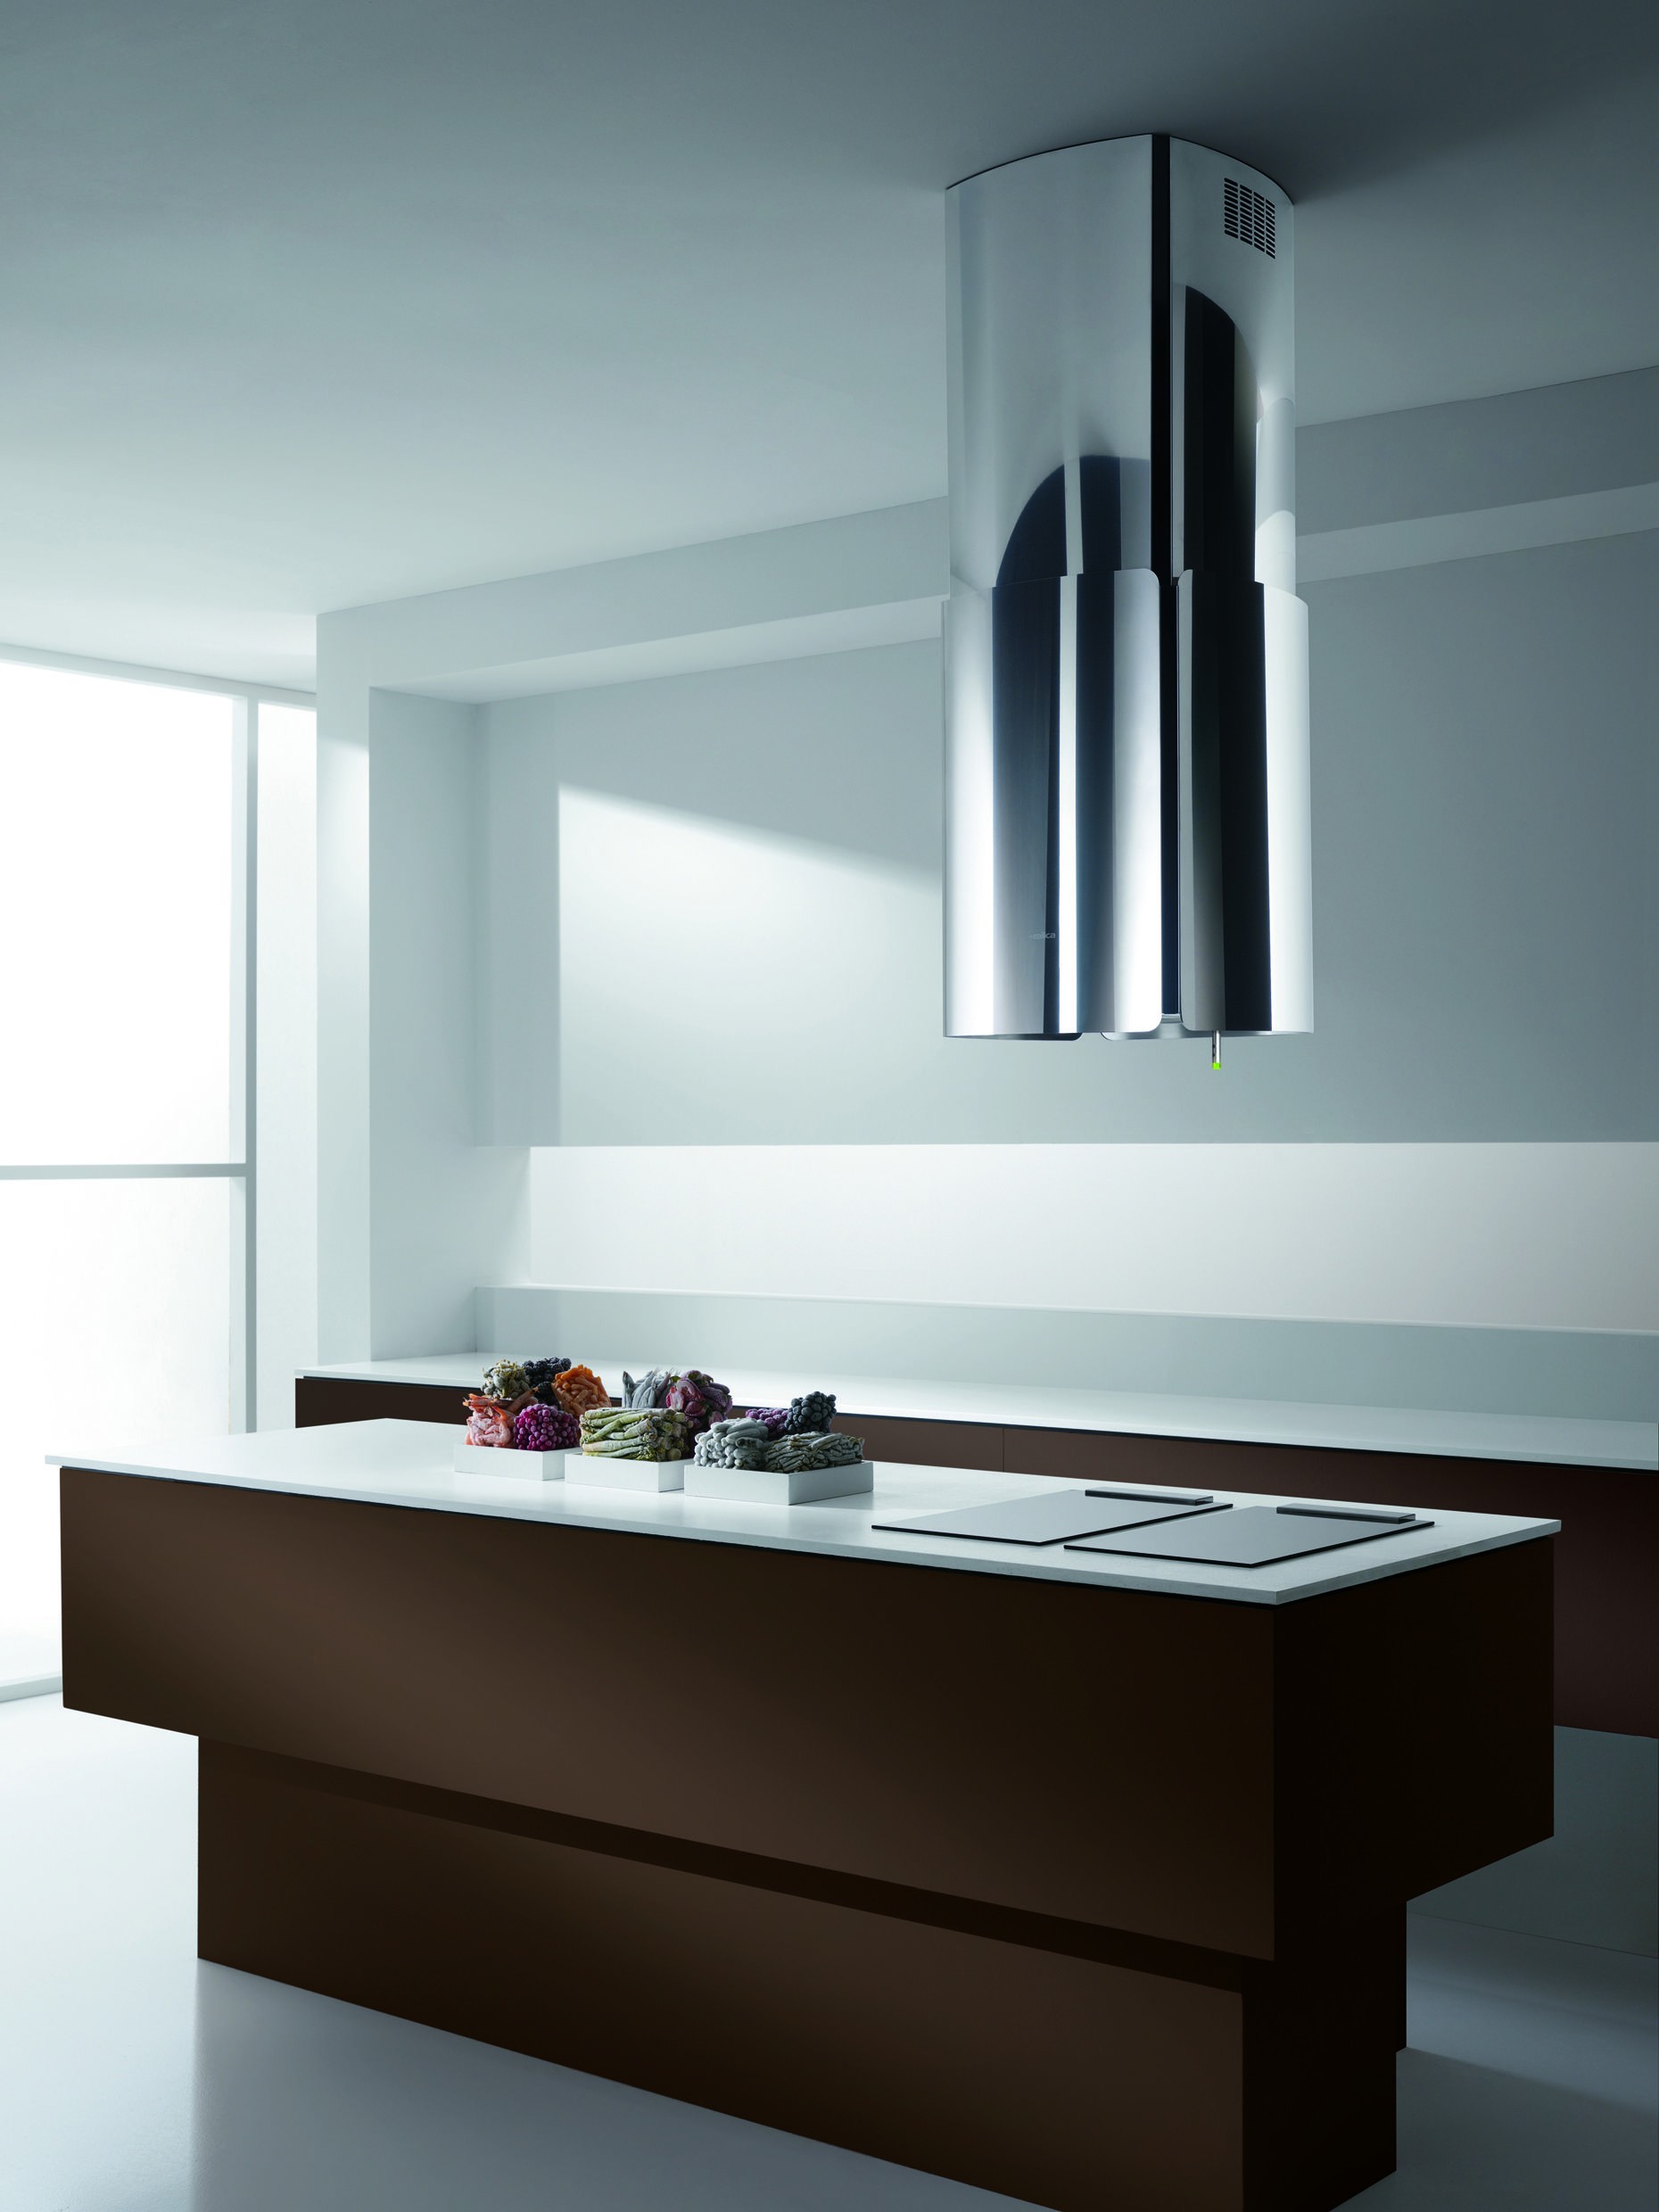 Elica CHROME Range Hood | Design#1 | Pinterest | Chrome, Ranges and ...